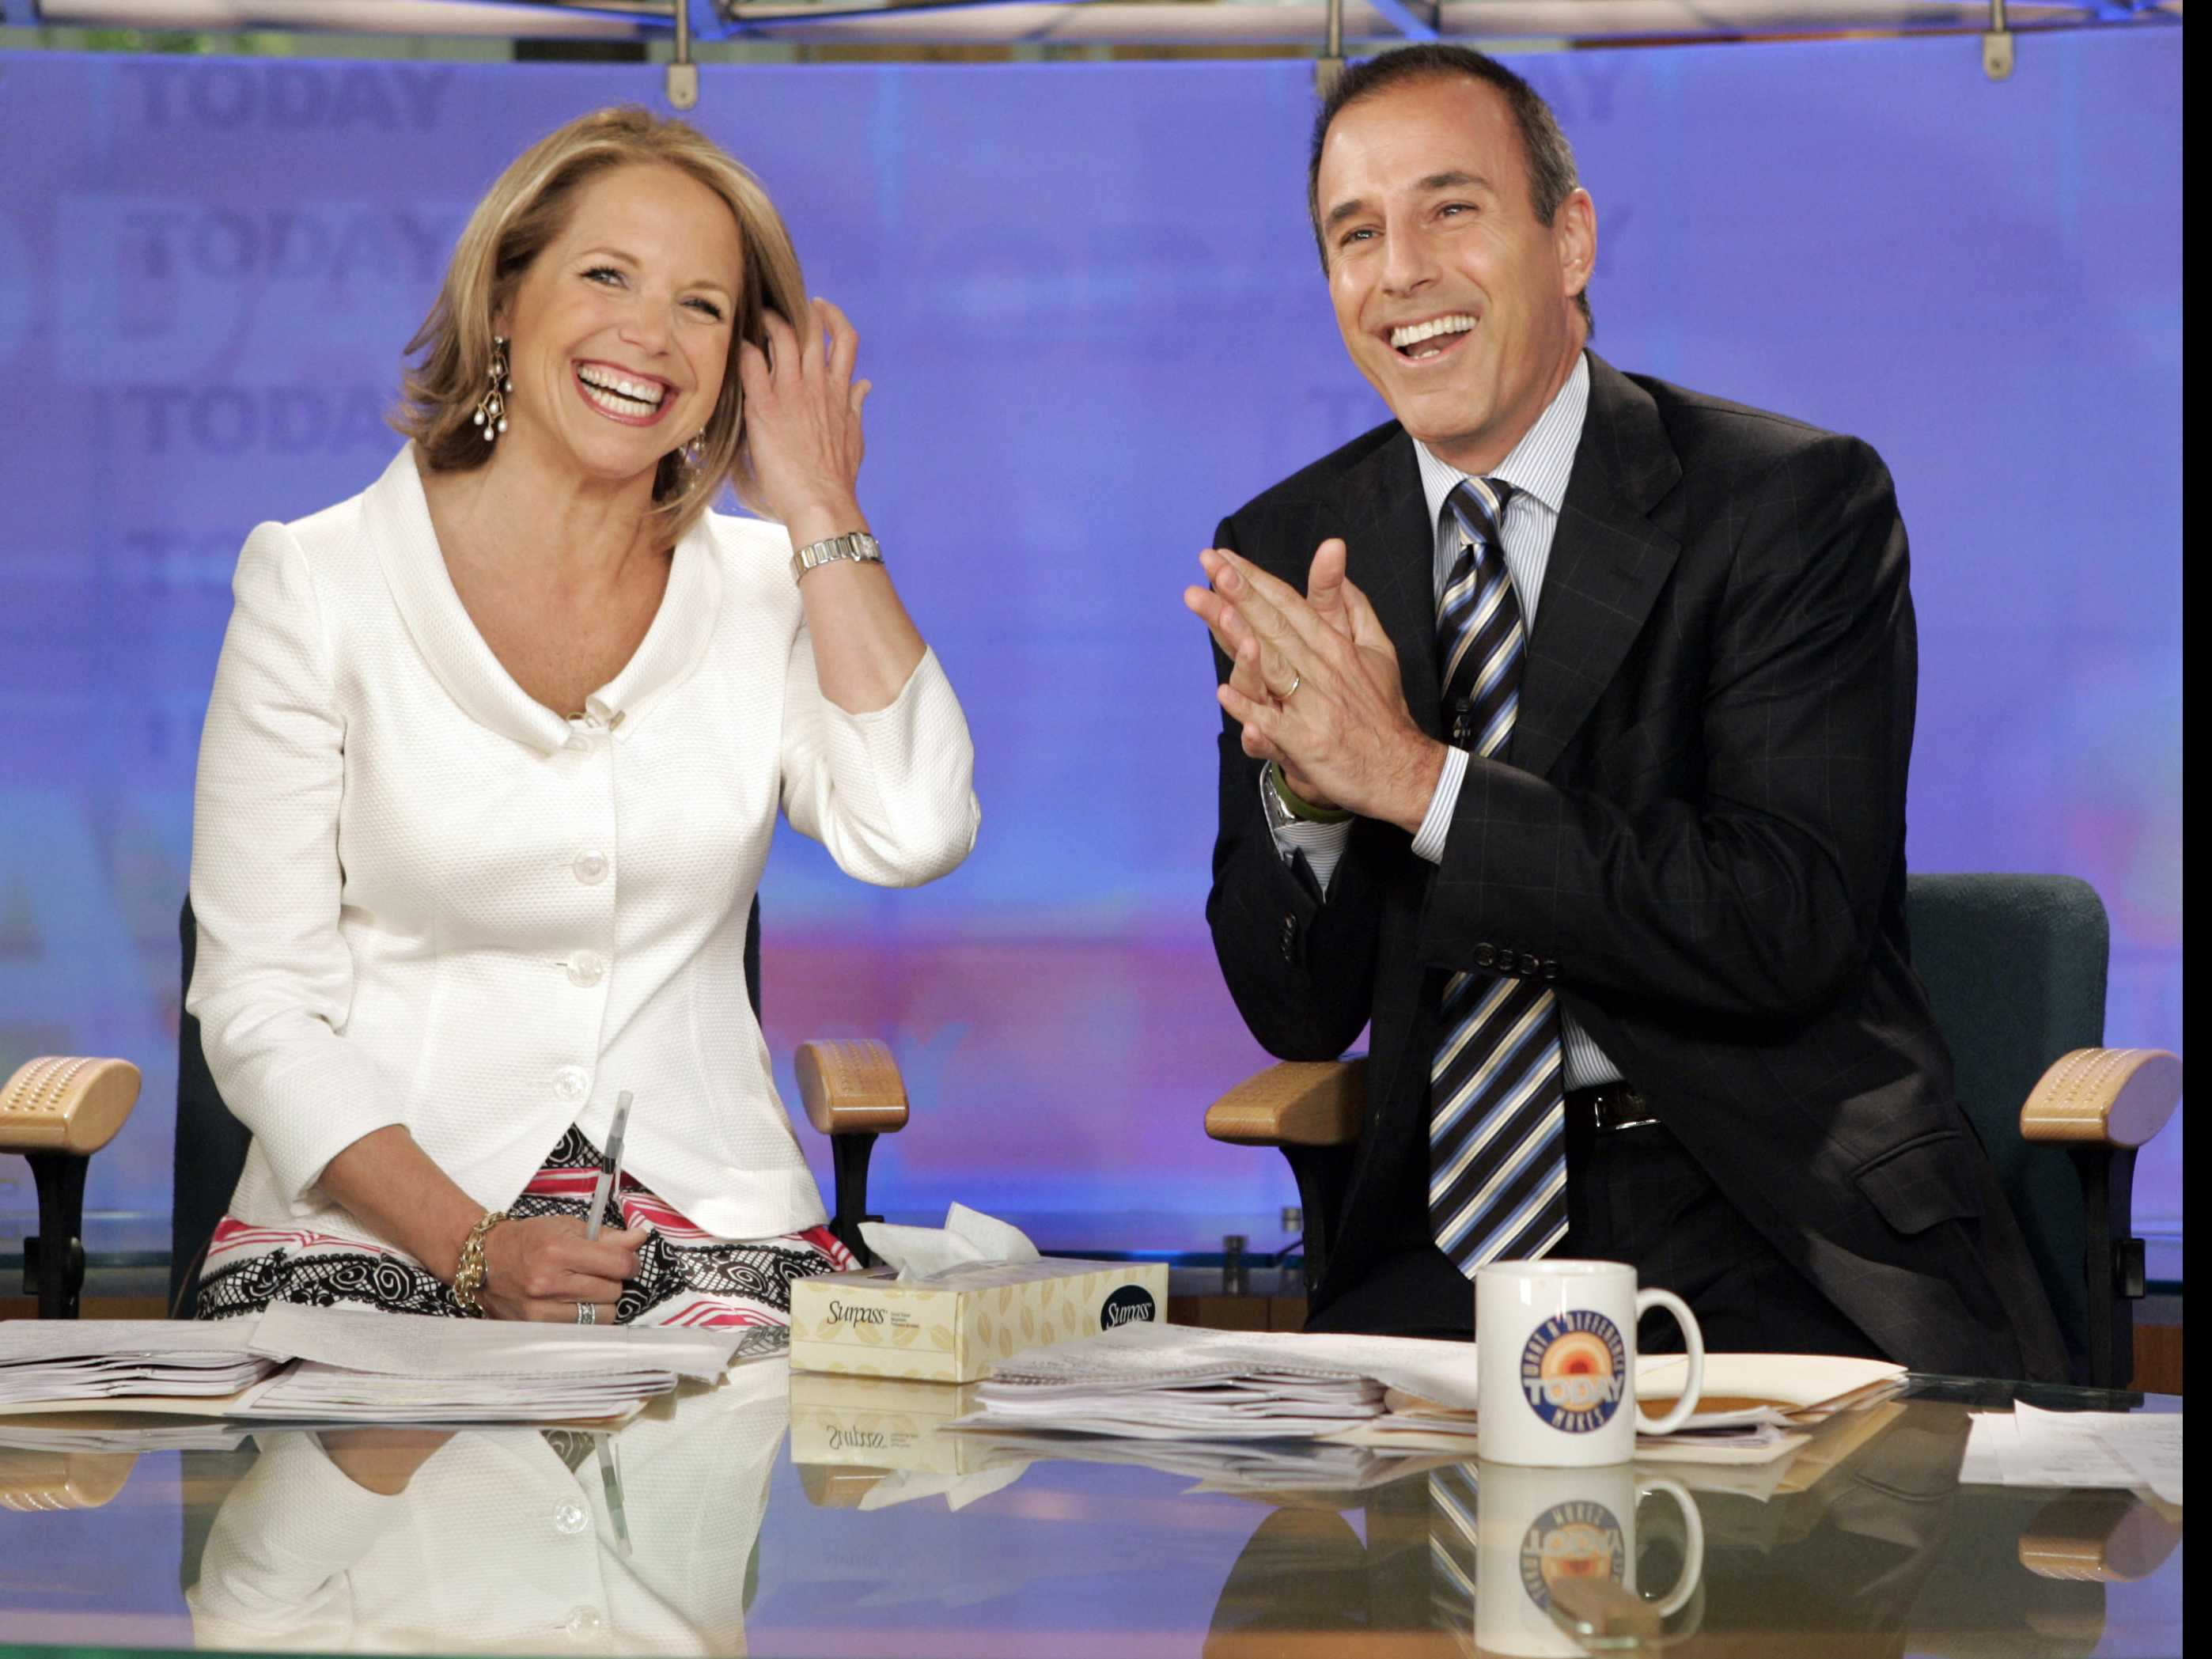 Katie Couric Breaks Silence on Matt Lauer: 'I Had No Idea'